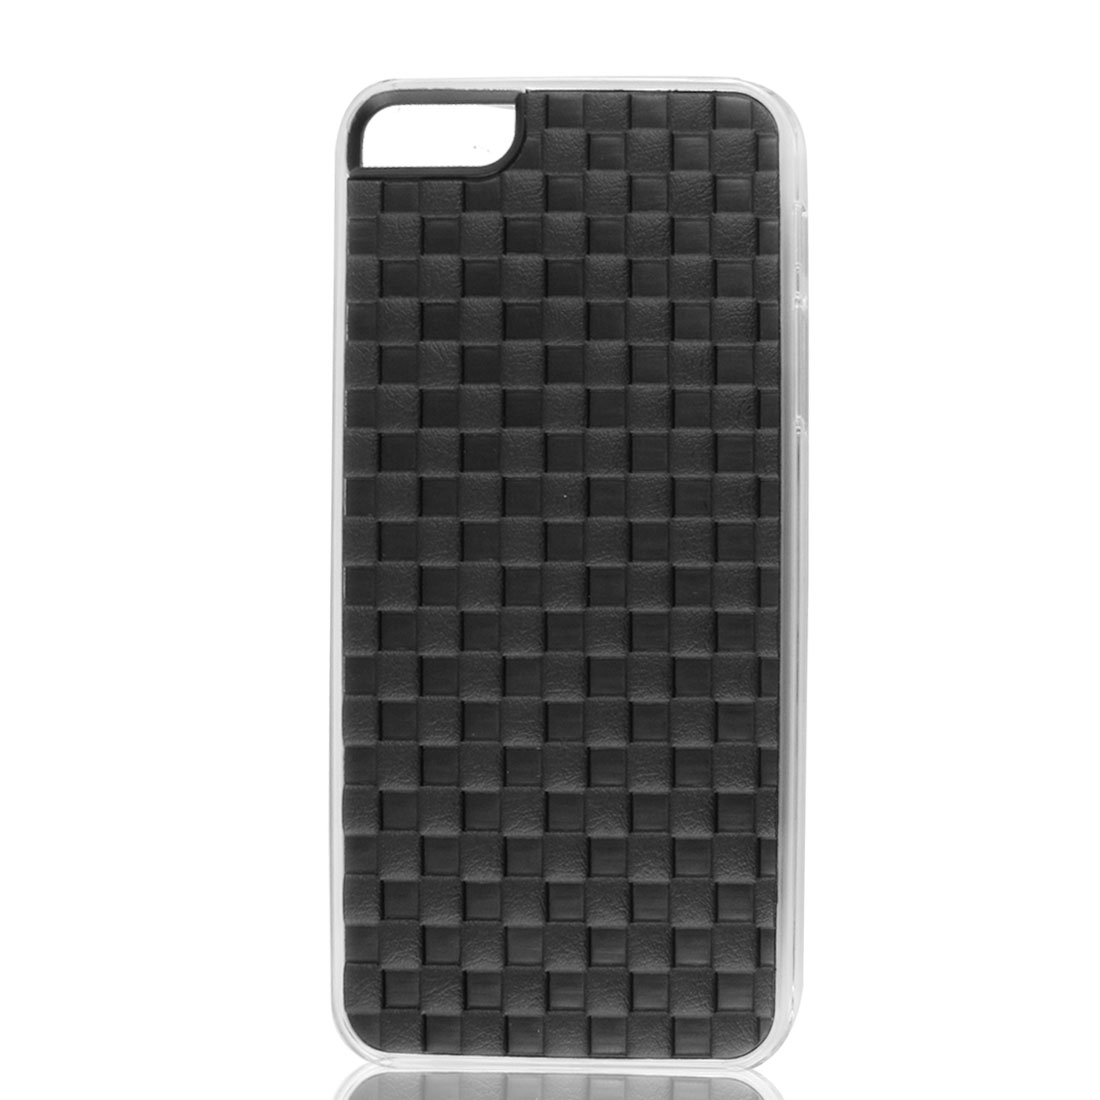 Black Faux Leather Coated Check Hard Back Case Cover for Apple iPhone 5 5G 5th